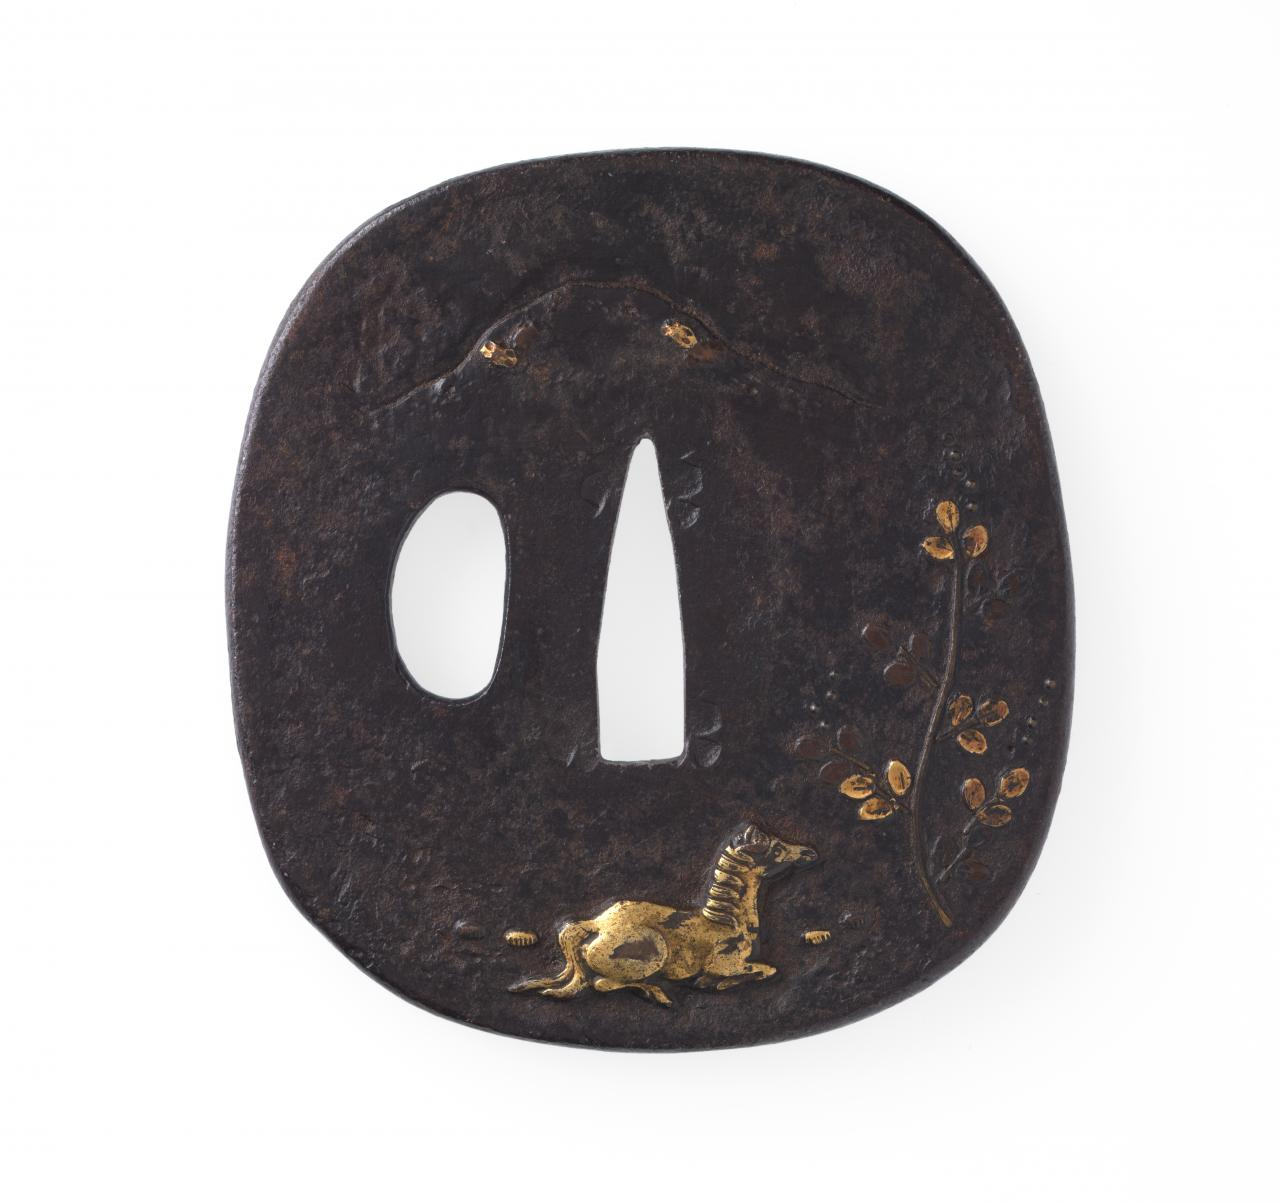 Sword guard with horse, bush clover and mountain design